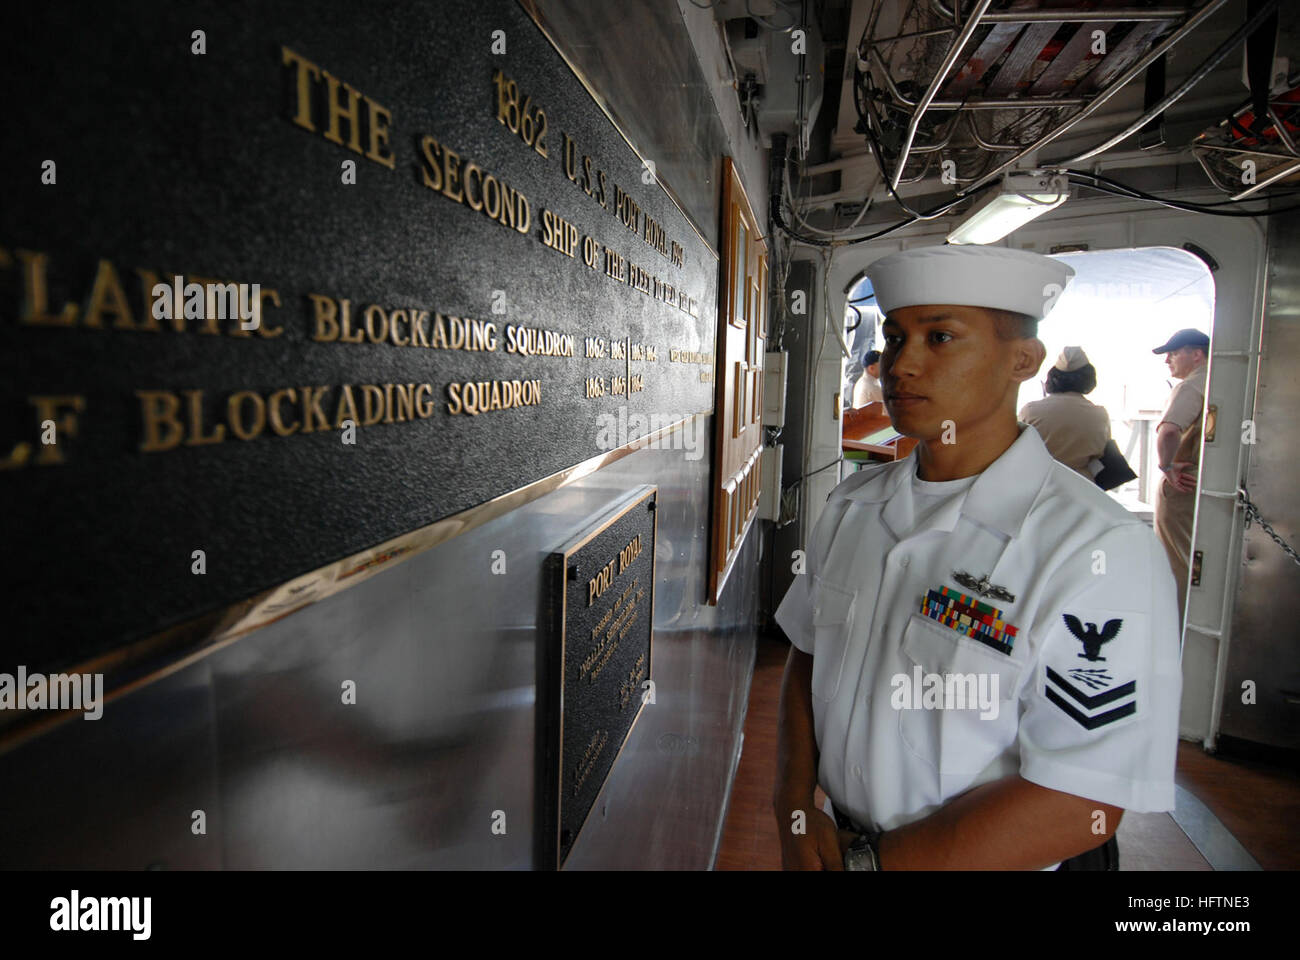 070507-N-4965F-001 PEARL HARBOR, Hawaii (May 7, 2007) - A Sailor stands petty officer of the watch (POOW) on the - Stock Image